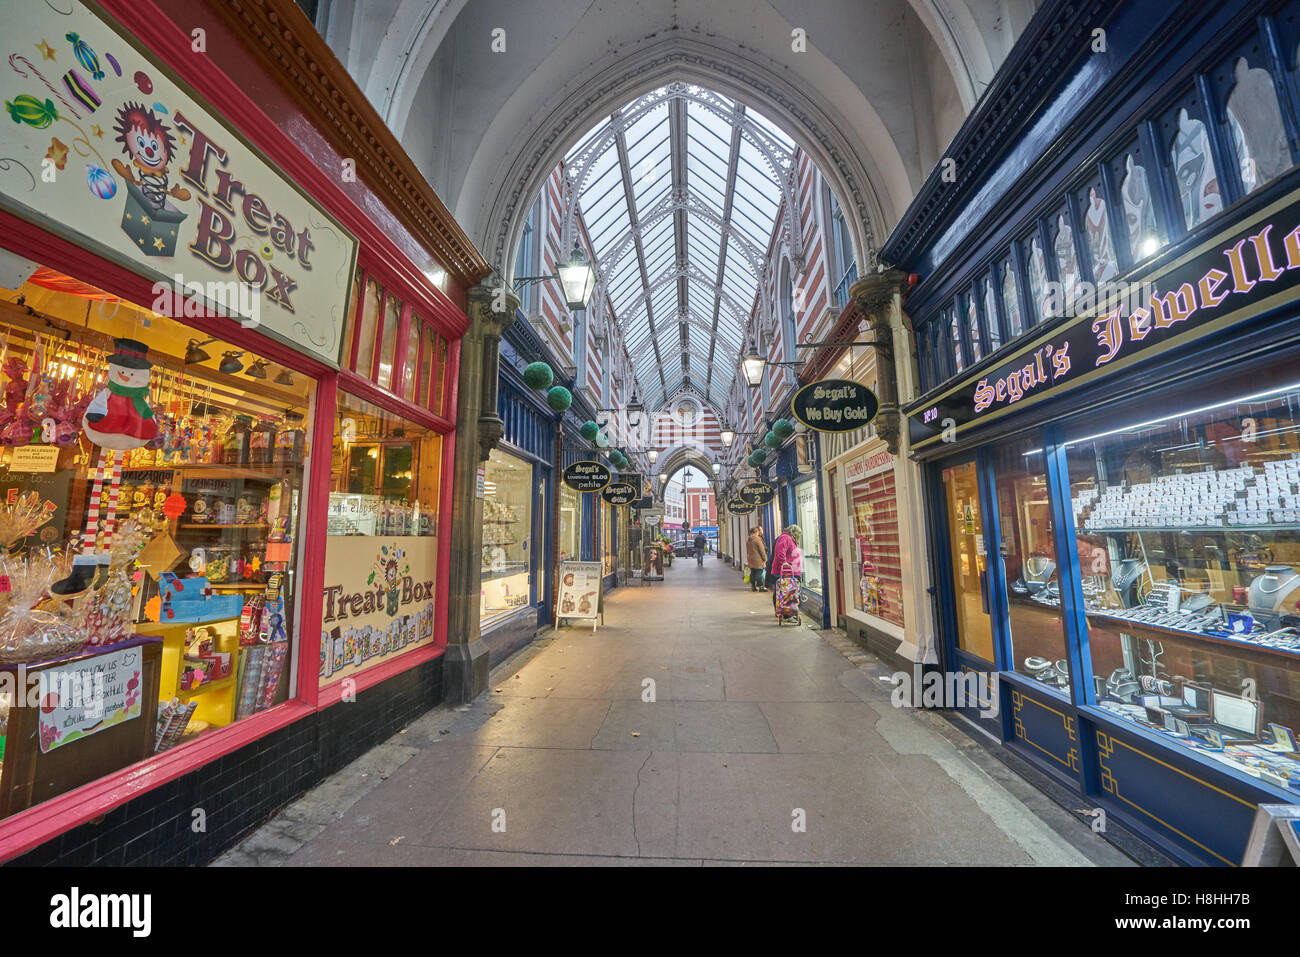 victorian shopping arcade Hull. - Stock Image